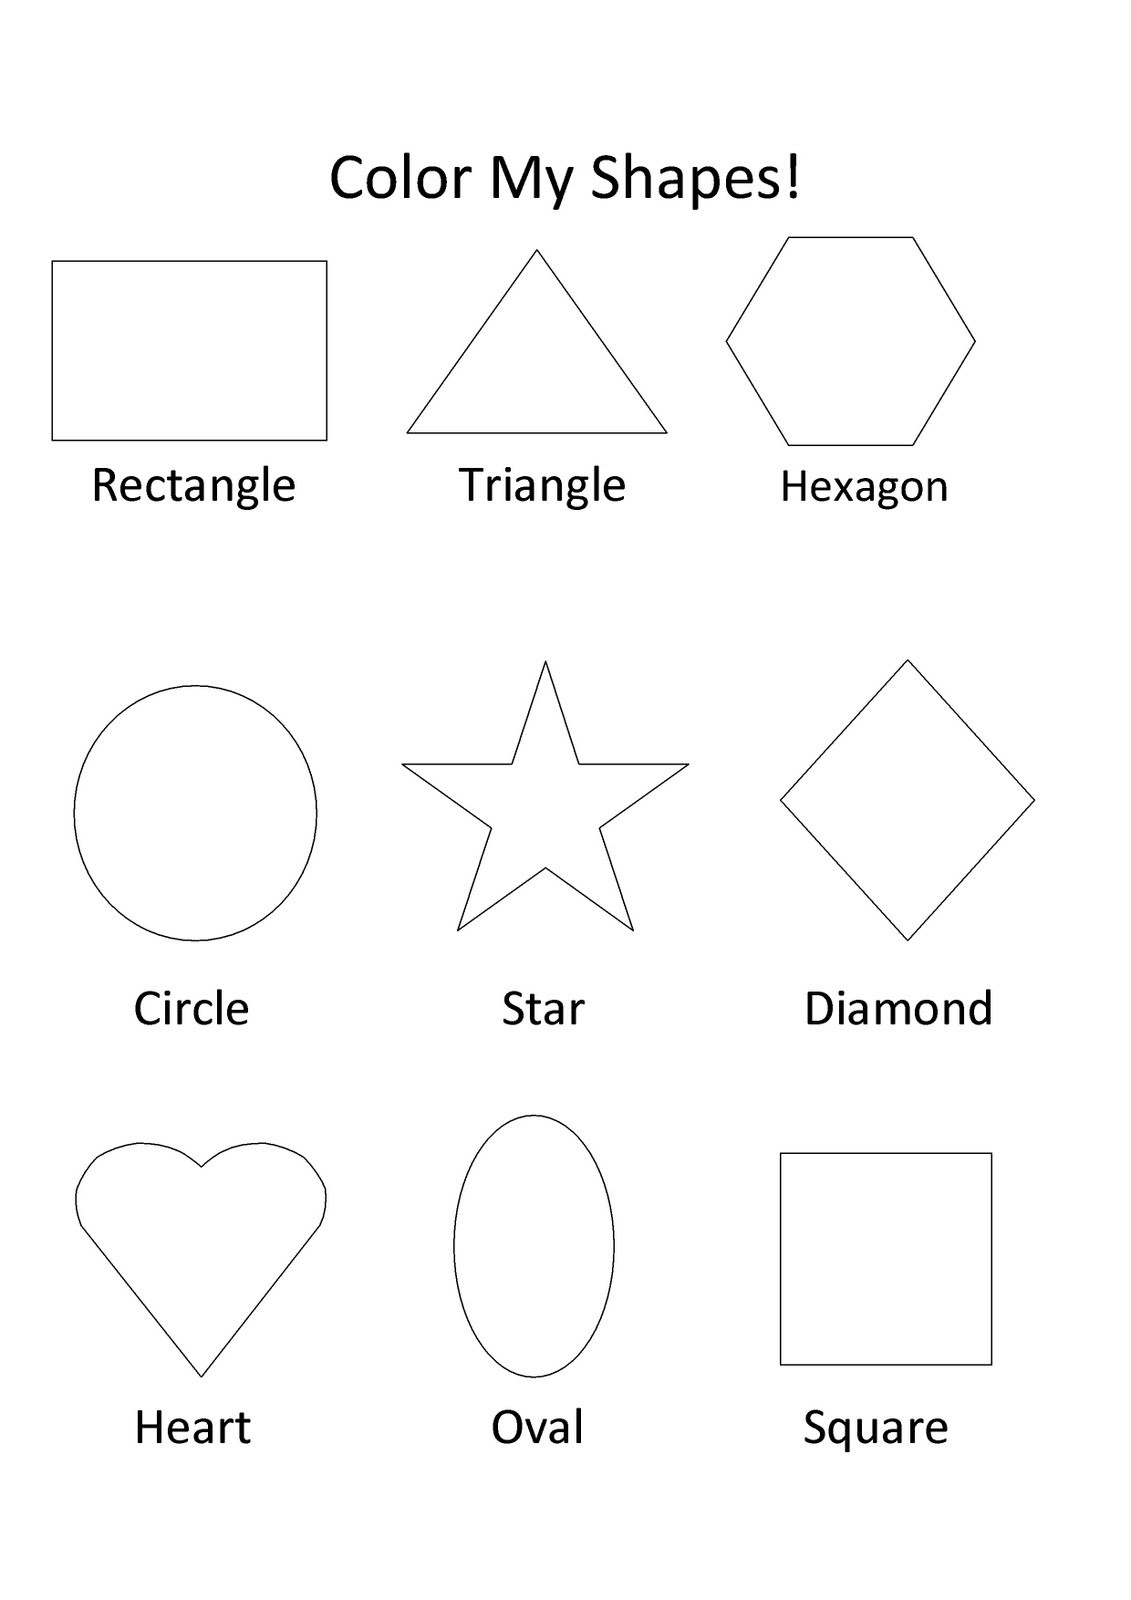 Preschool Diamond Shape Worksheets Free Printable Shapes Coloring for Kids Basic Color My